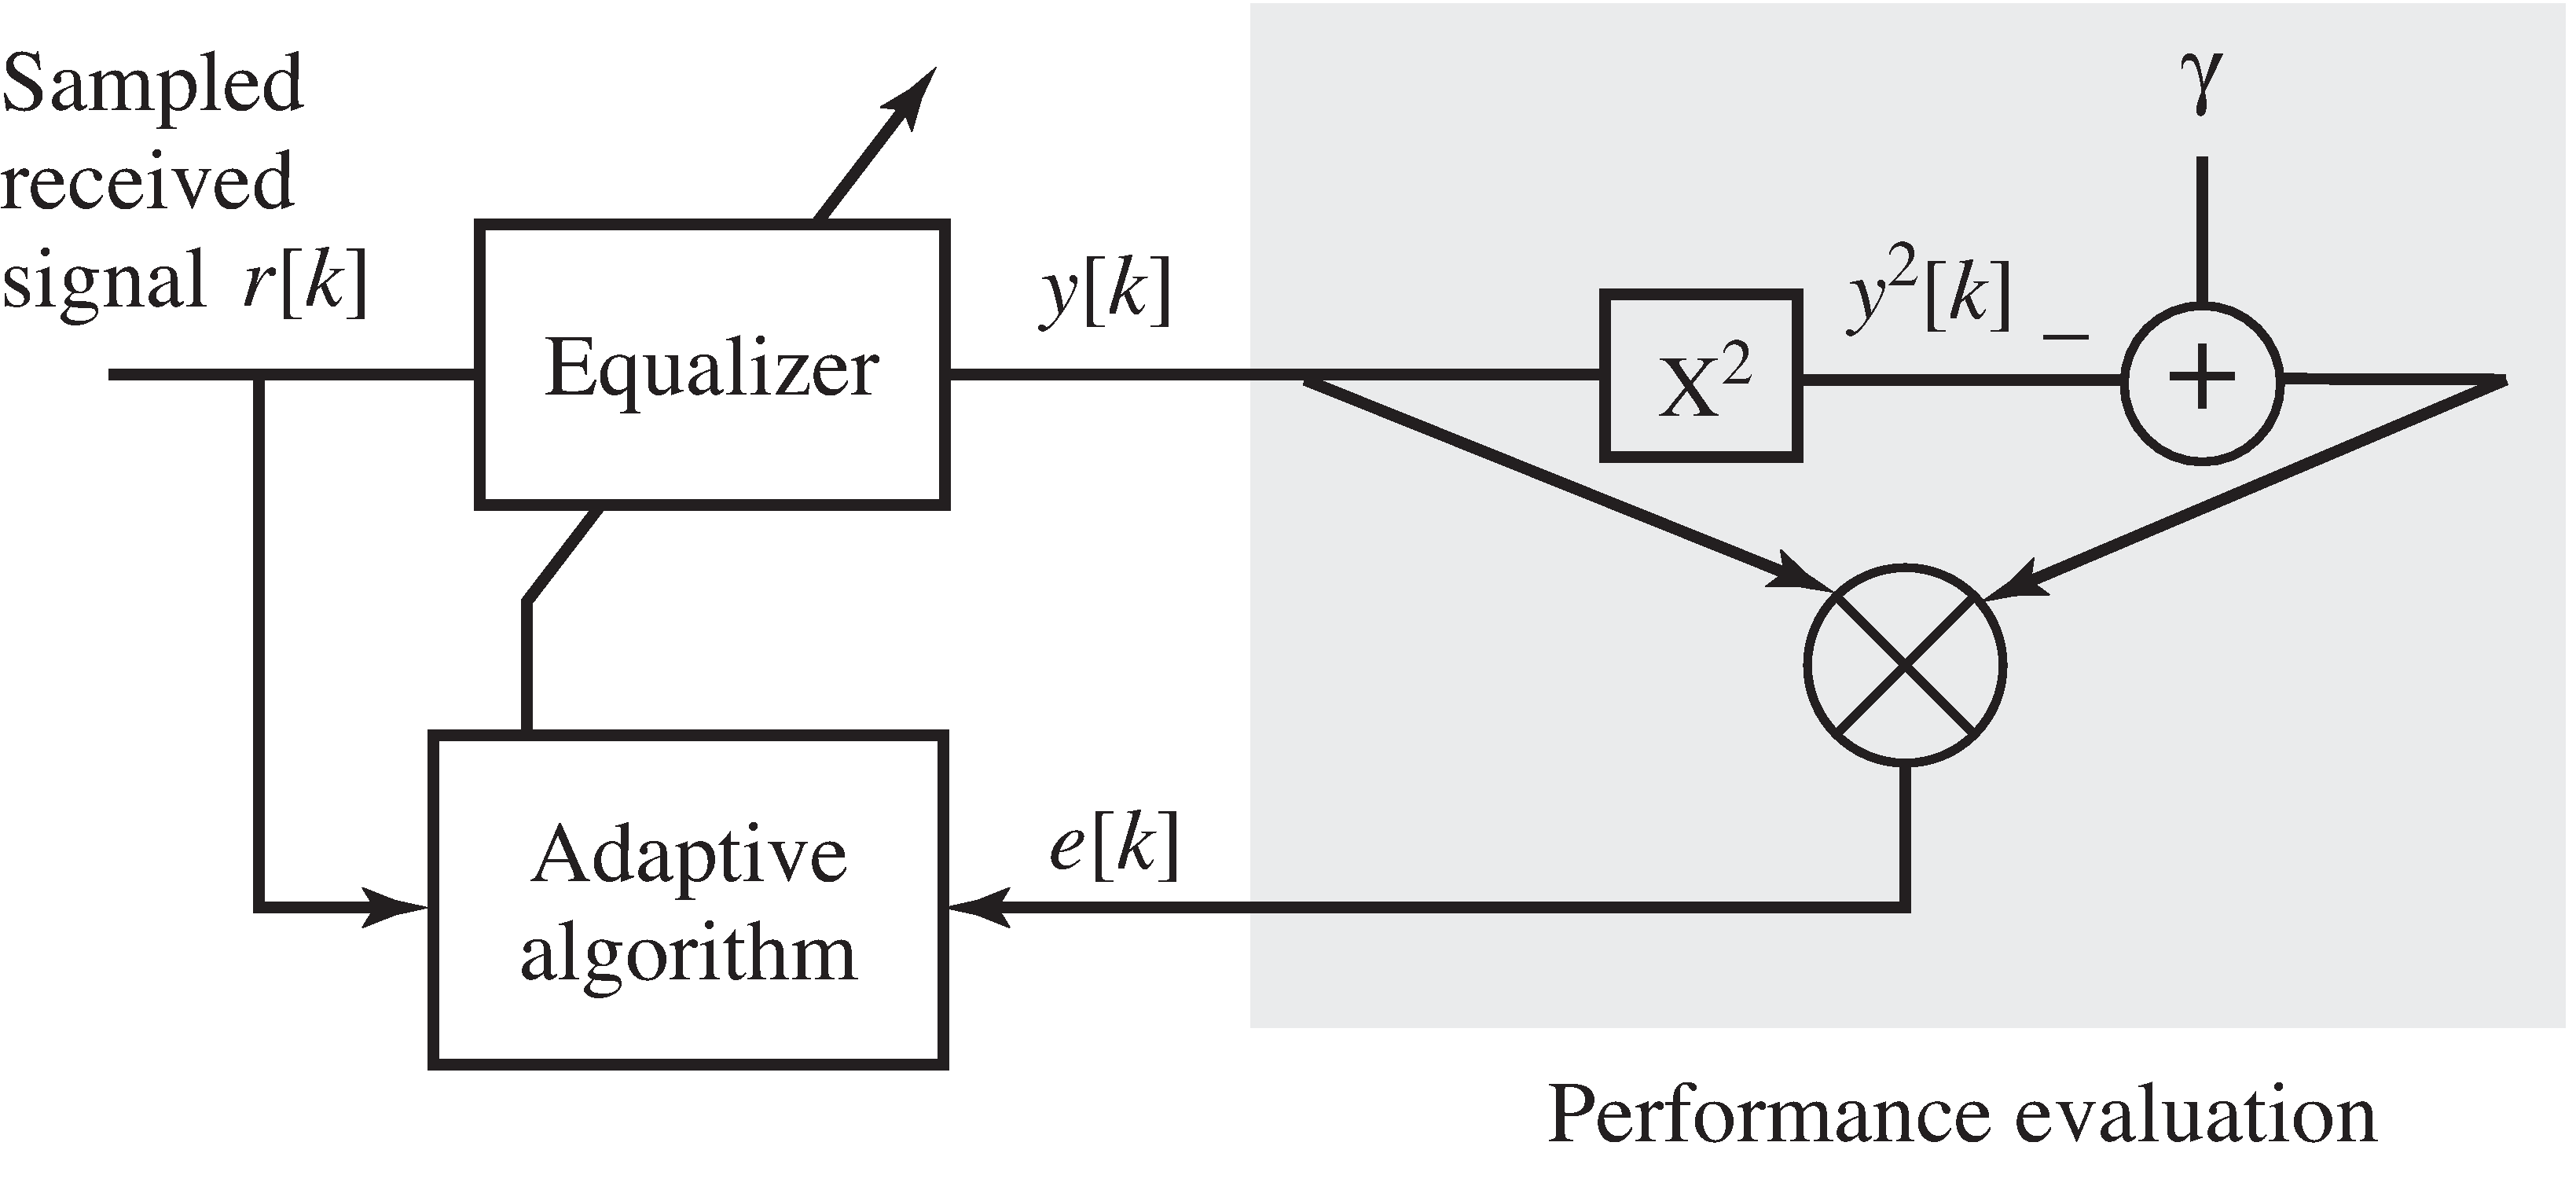 A dispersion-minimizing adaptive linear equalizer for binary data uses the difference between the square of the received signal and one to drive the adaptation of the coefficients of the equalizer.